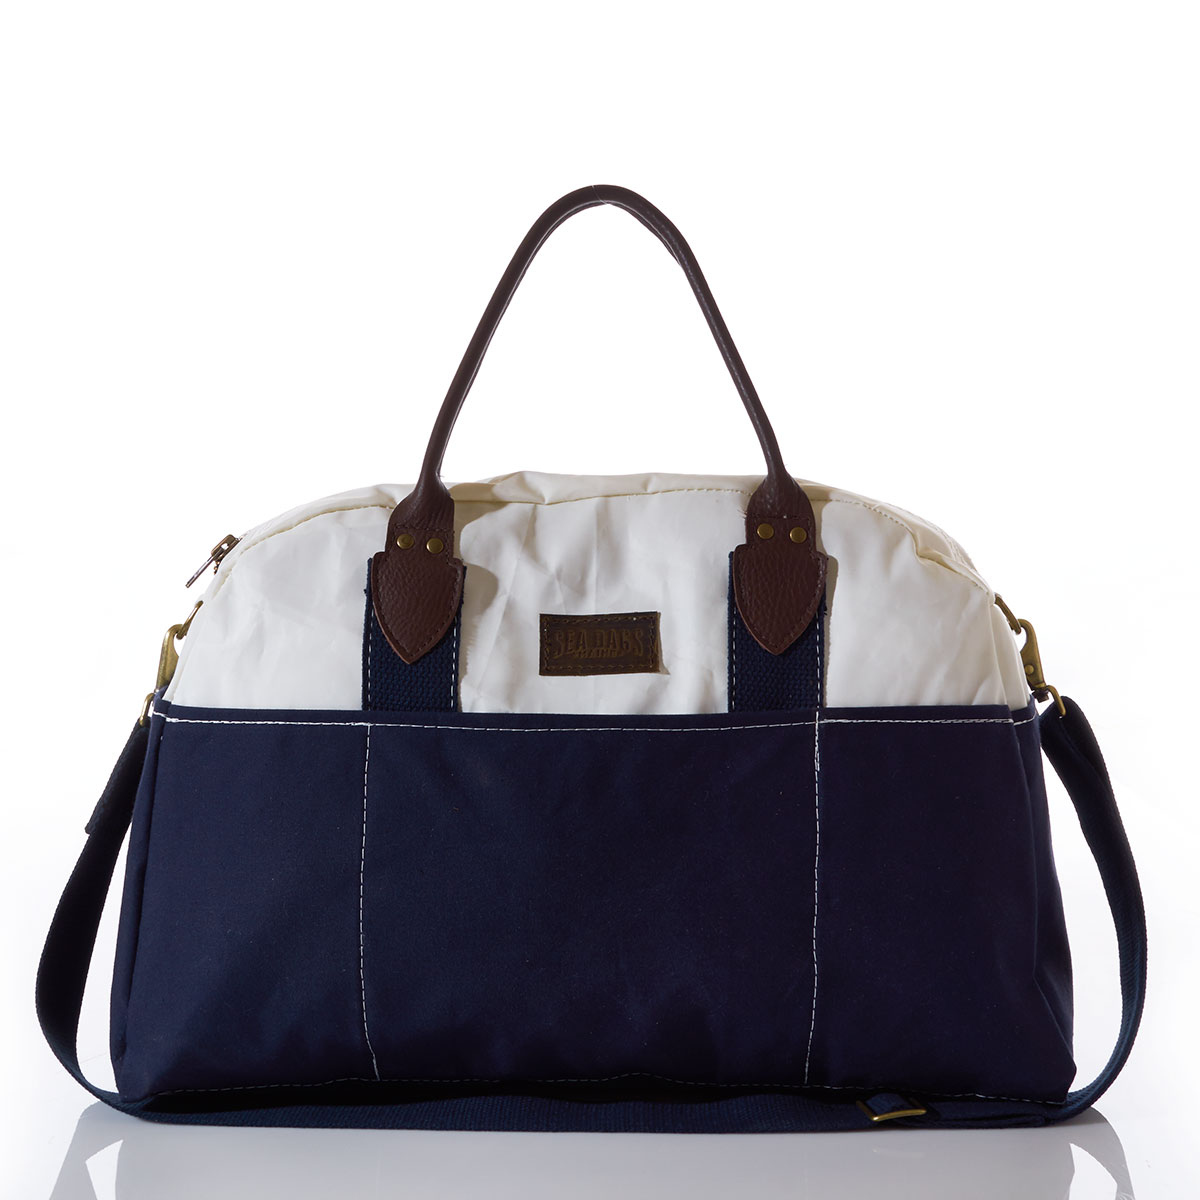 Recycled sail cloth weekend bag with handle